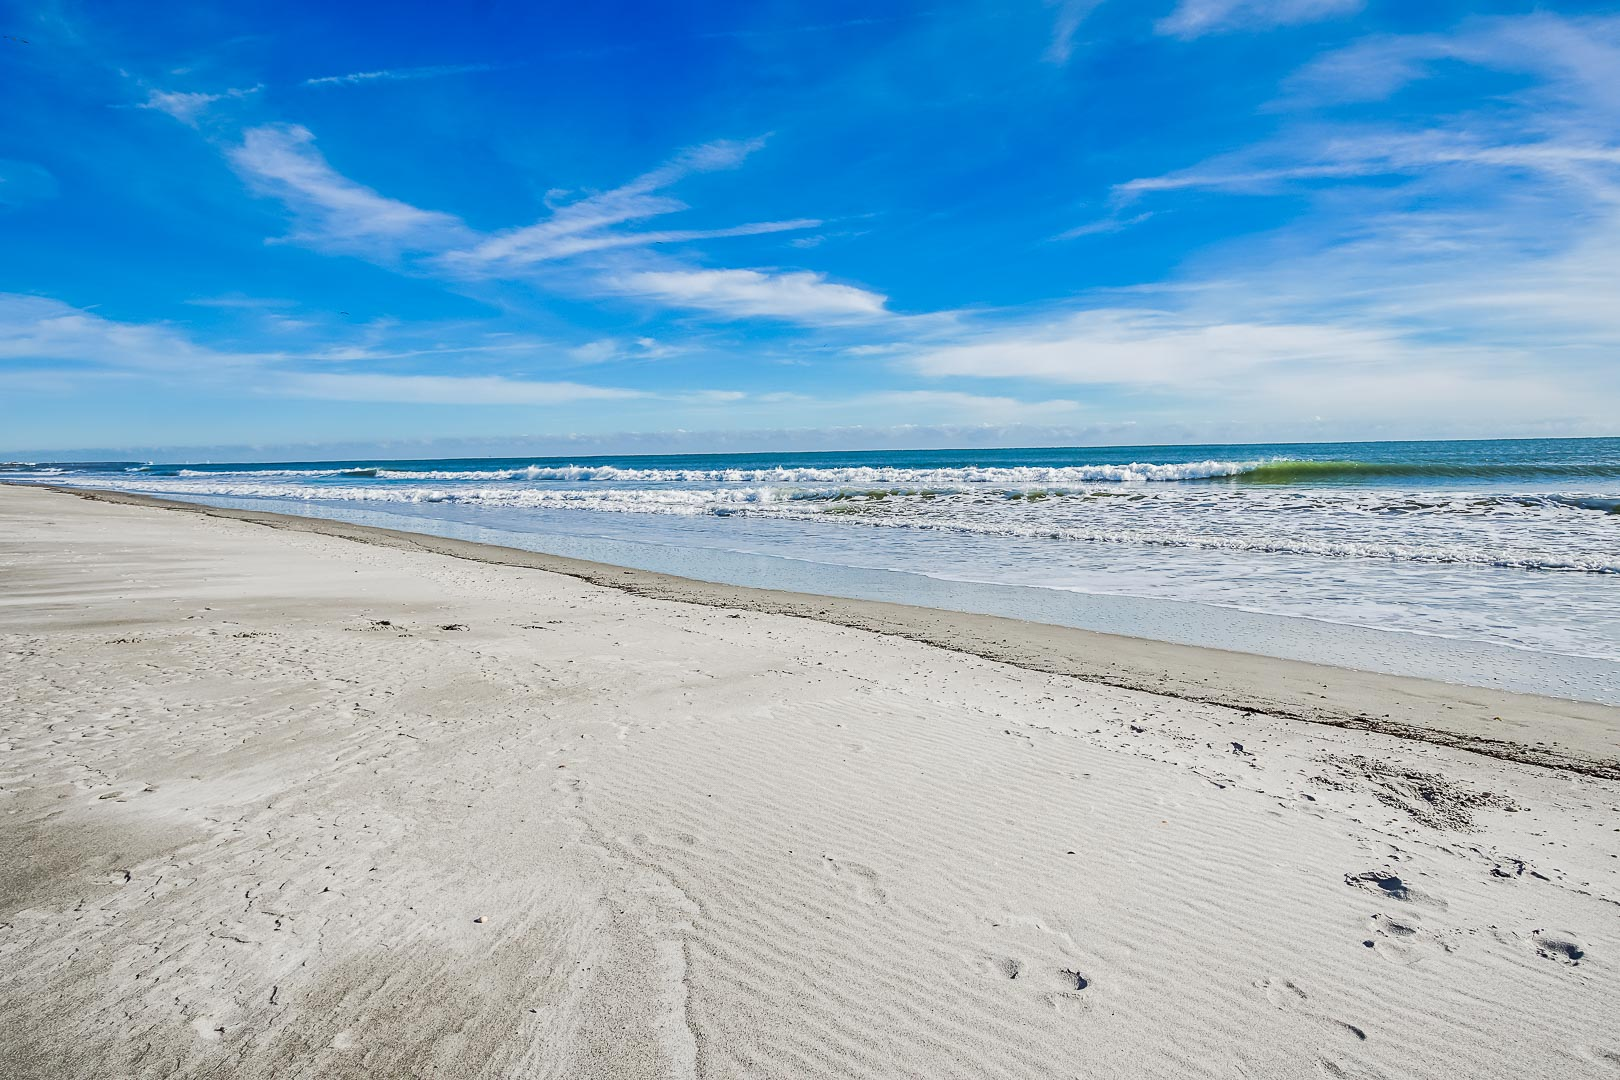 A beautiful ocean view at VRI's The Resort on Cocoa Beach in Florida.